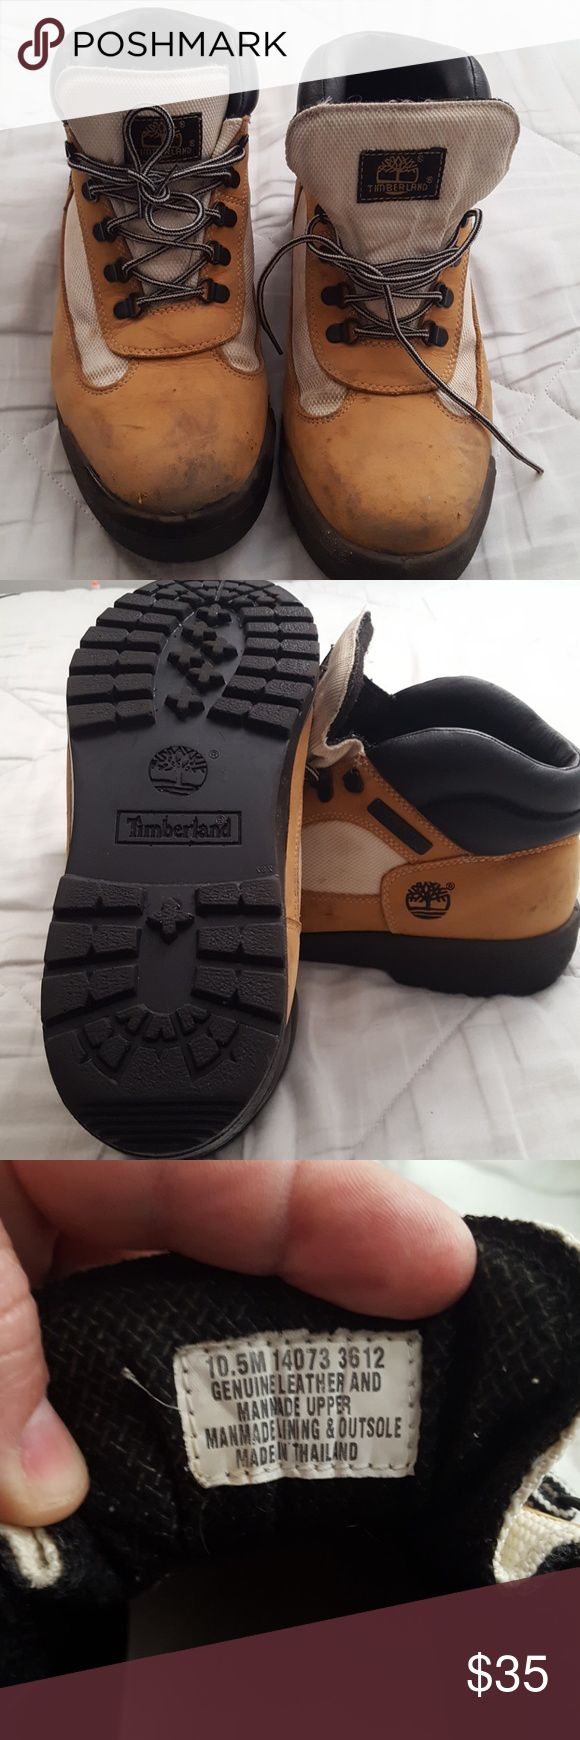 Timberland boot Very good condition boot timberland Timberland Shoes Boots